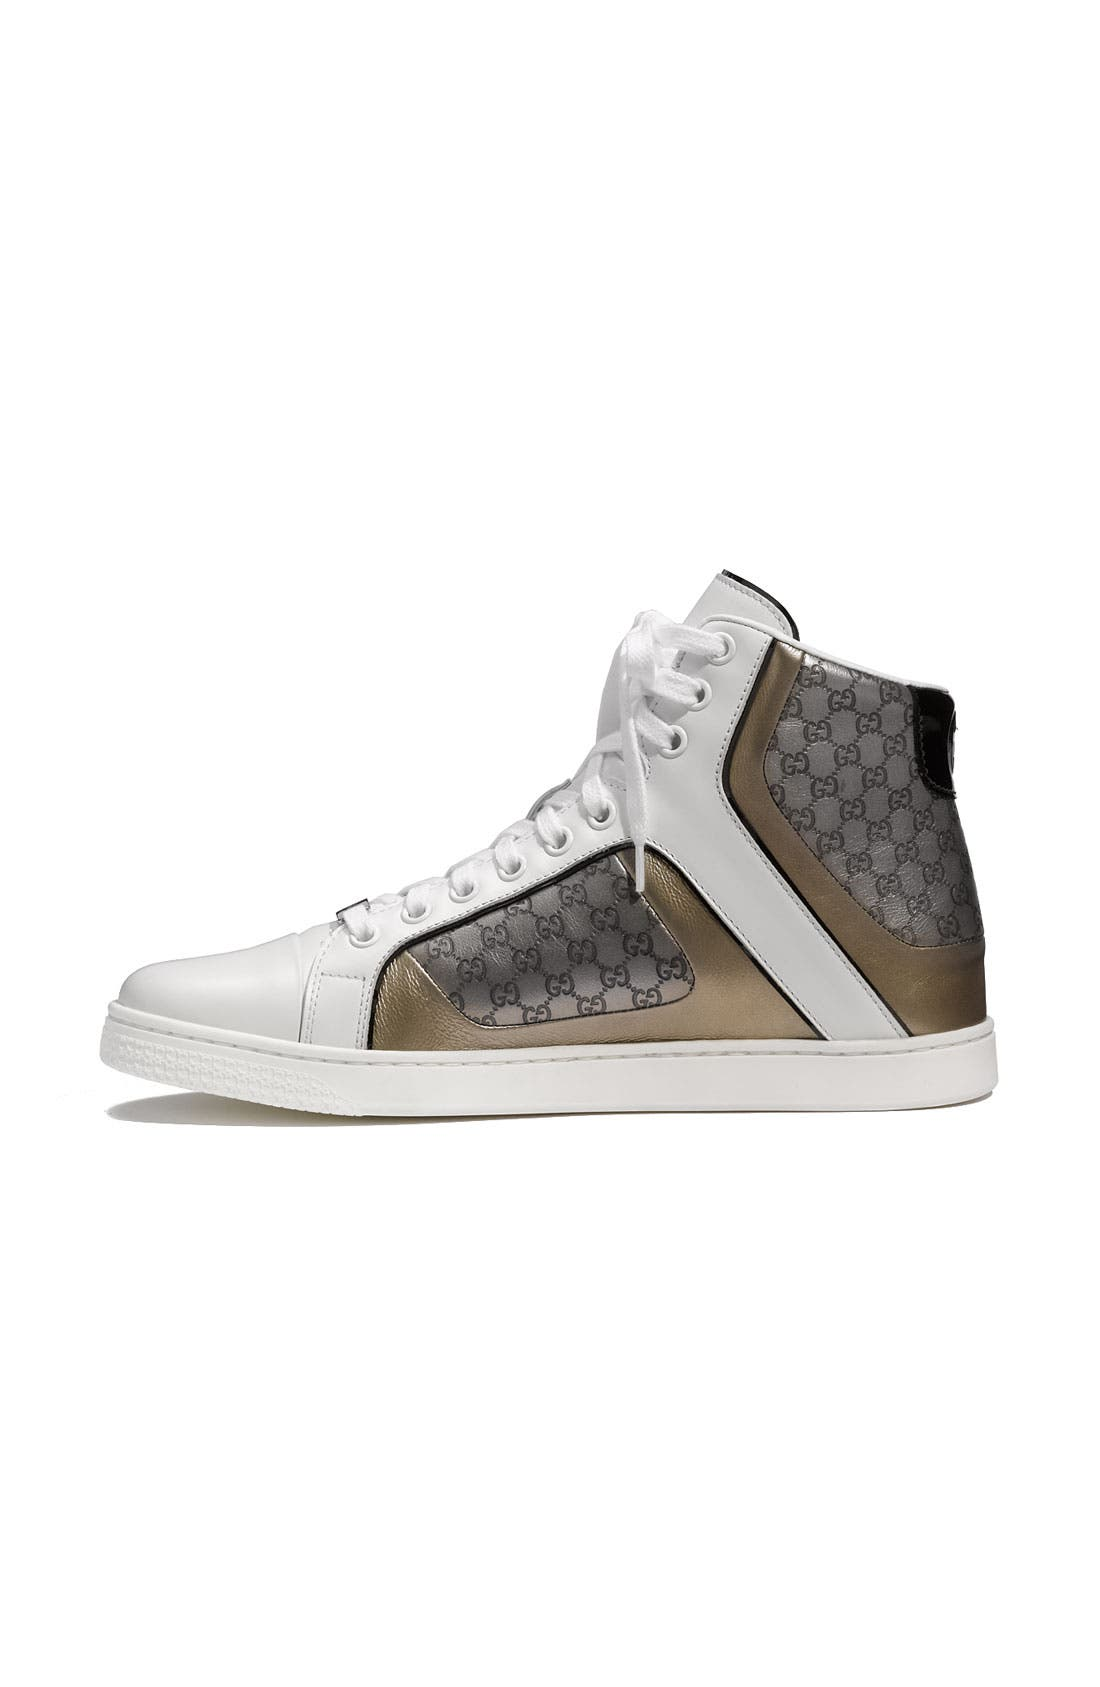 Alternate Image 2  - Gucci 'Coda Pop' High Top Sneaker